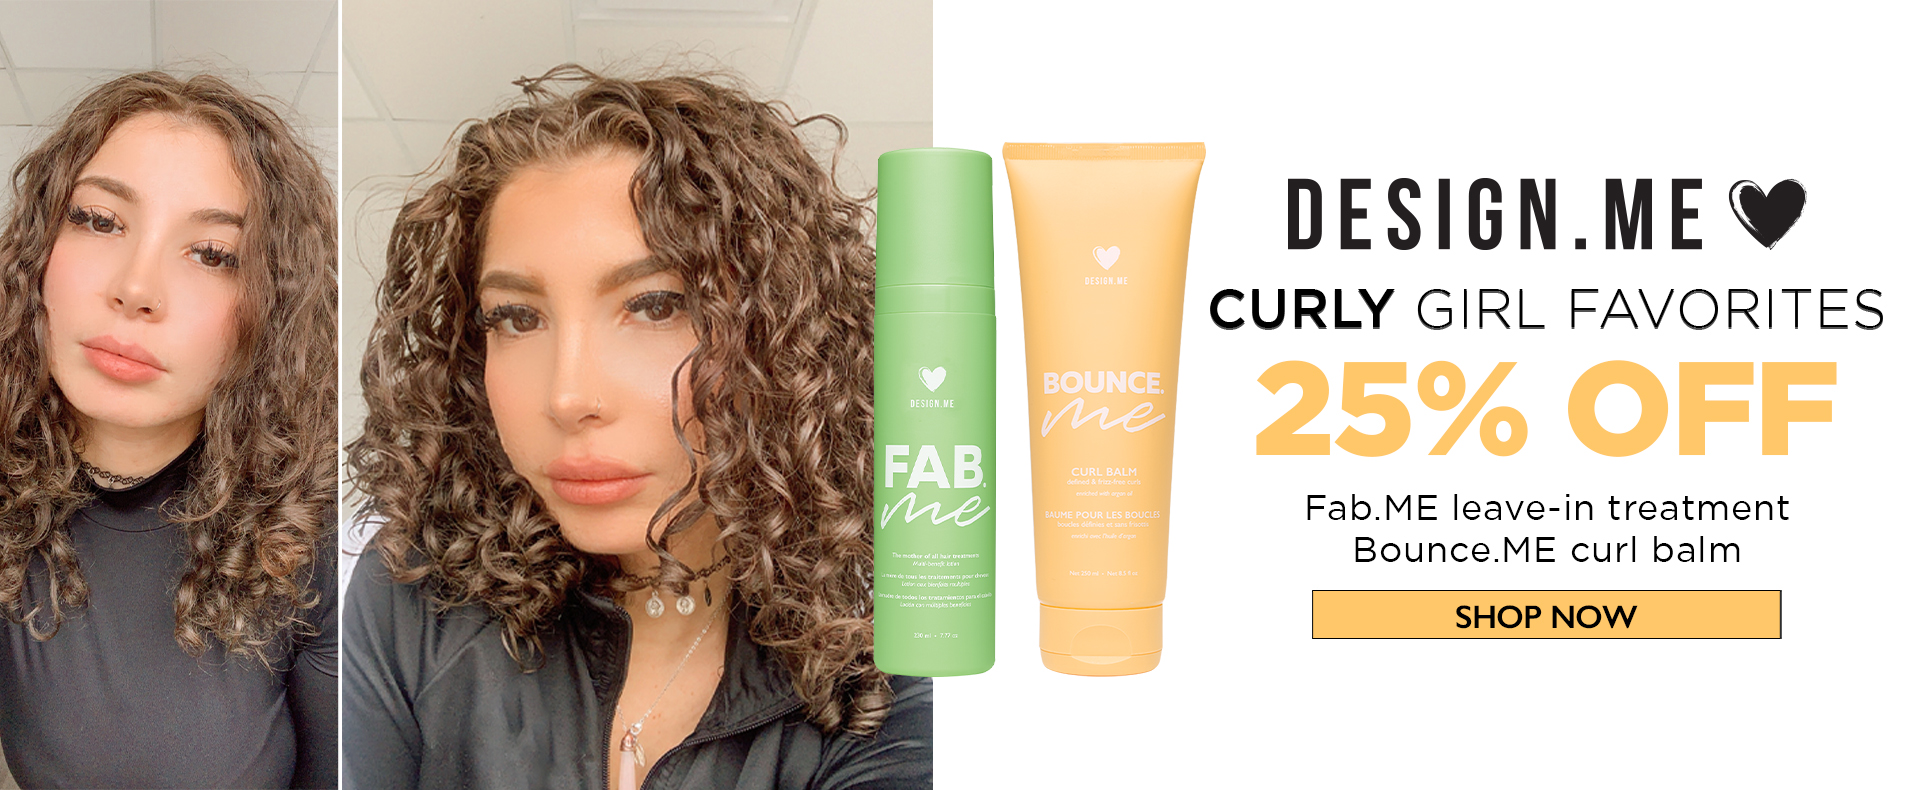 DesignMe - Curly Girl Favourites!